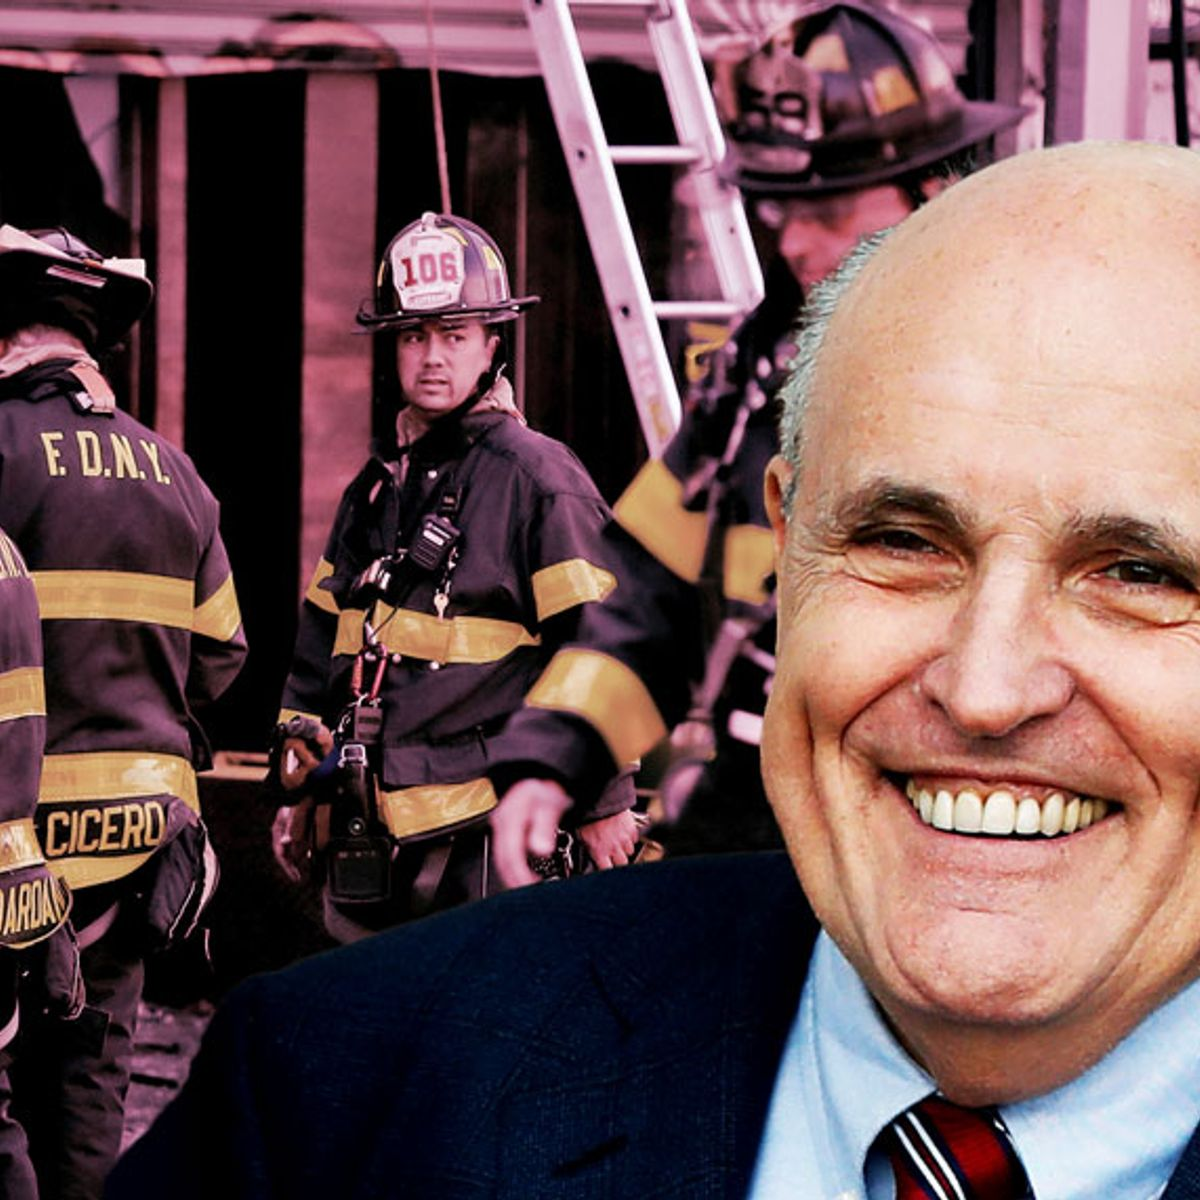 Giuliani was always a fraud. Just ask the FDNY